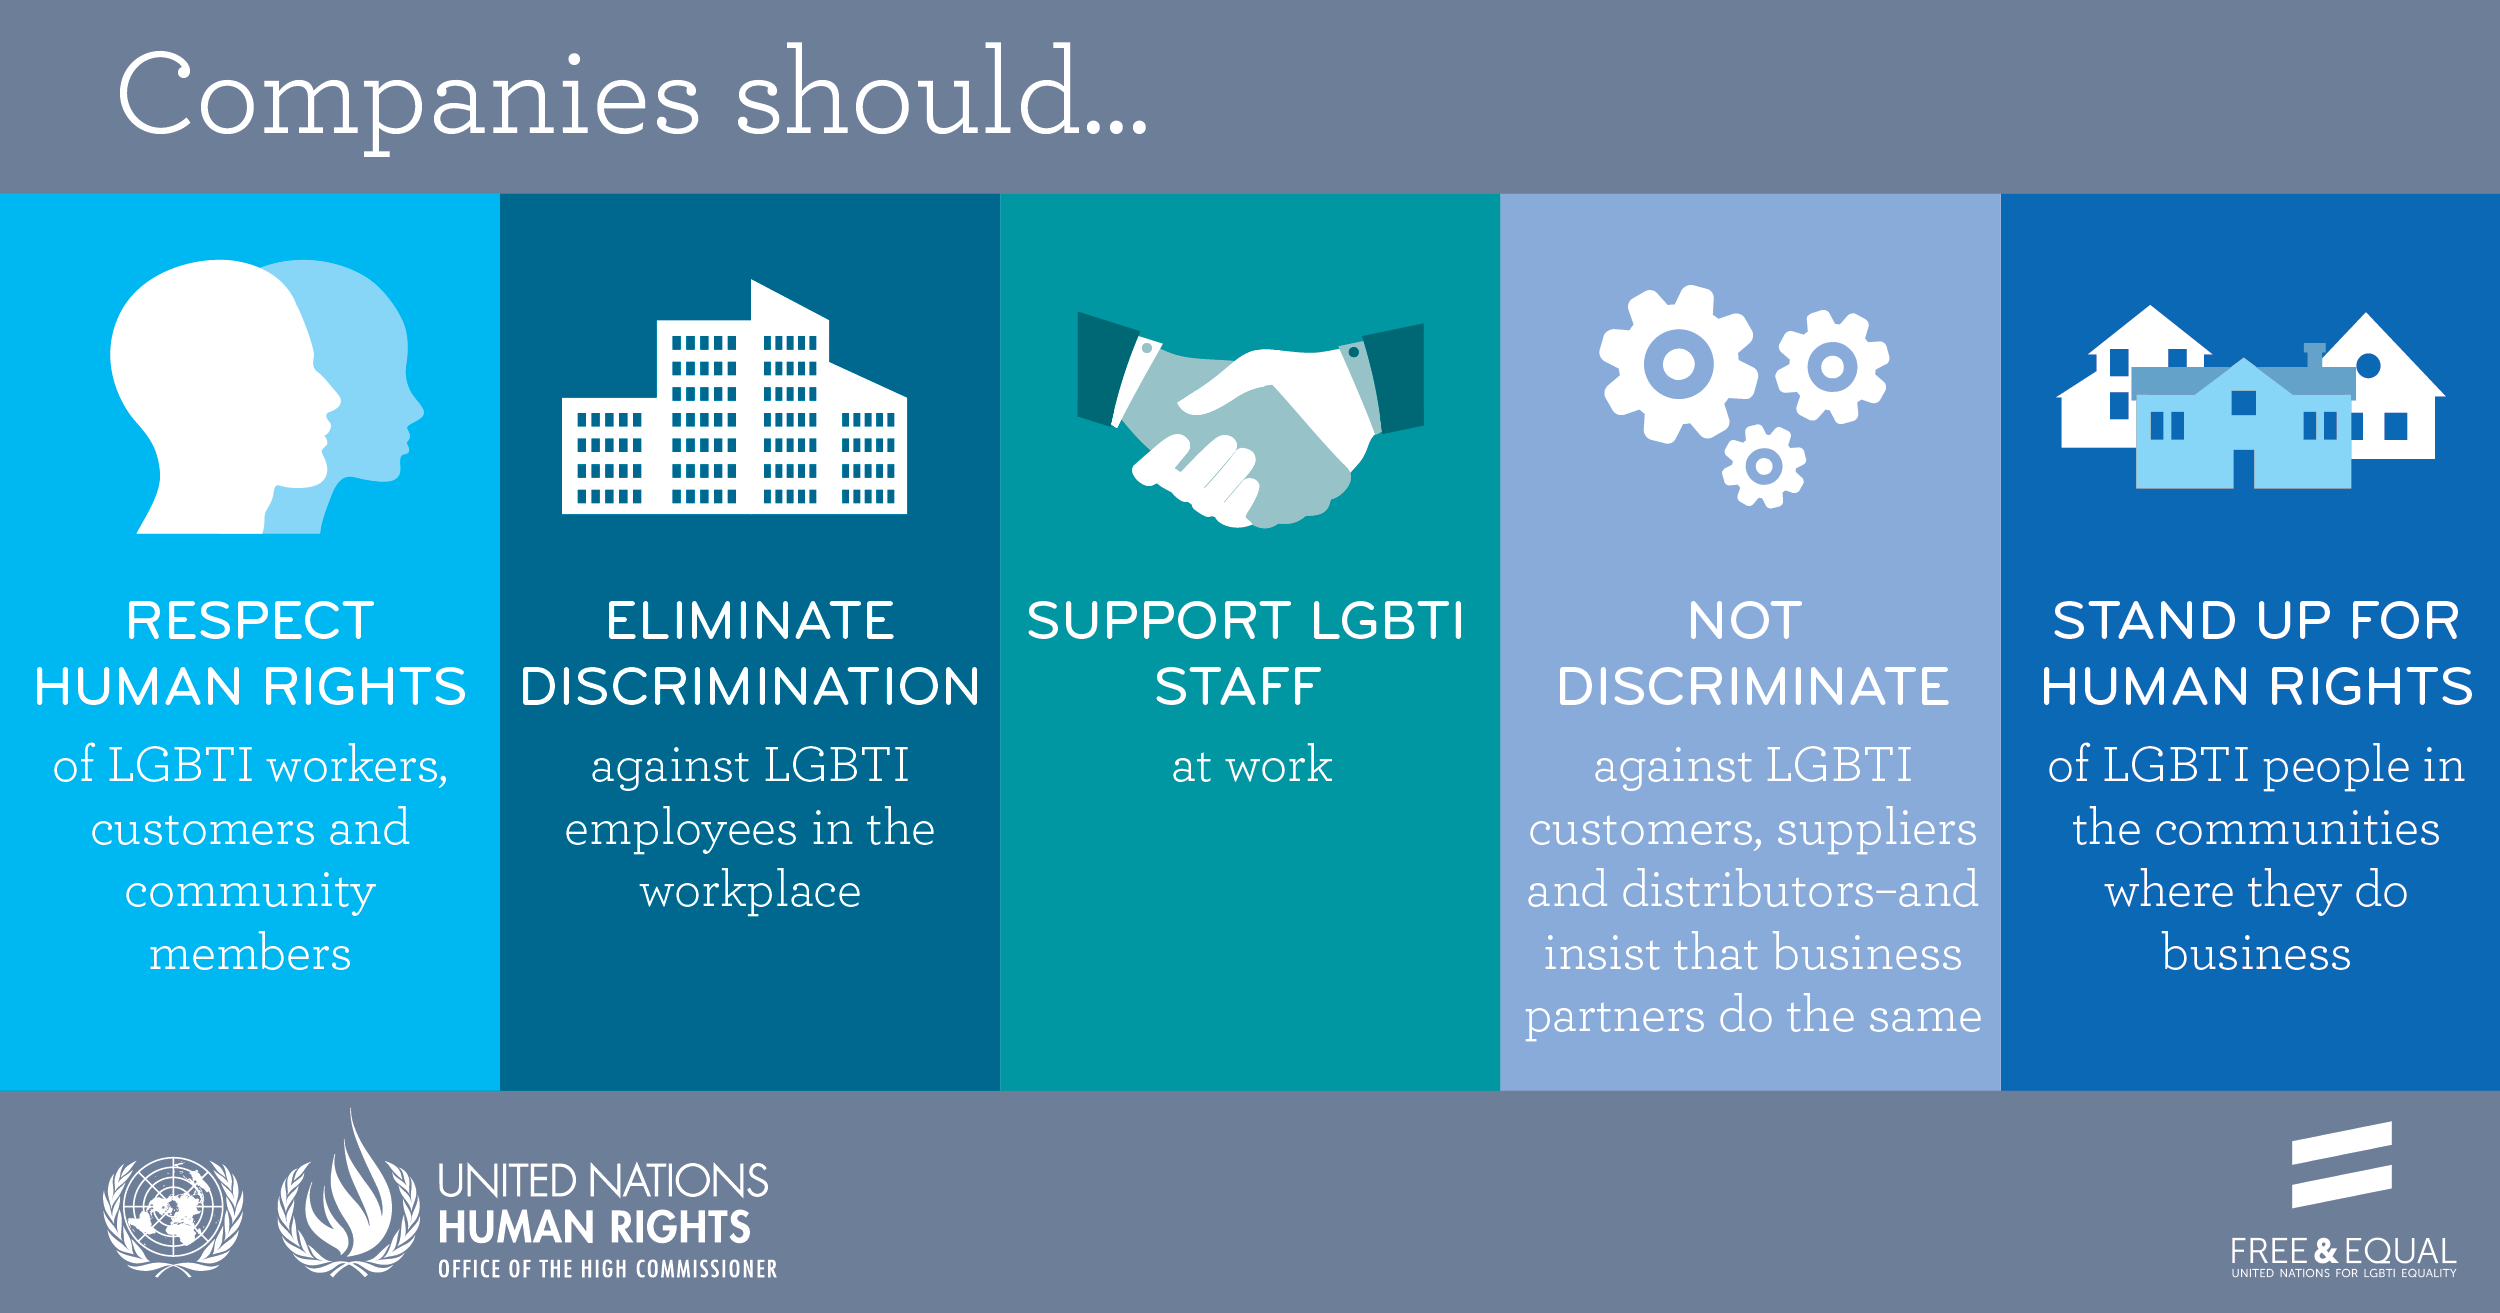 Graphic showing five standards of conduct for business: respect the human rights, eliminate discrimination, support LGBTI staff at work, prevent human rights violations and stand up for the human rights of LGBTI people.